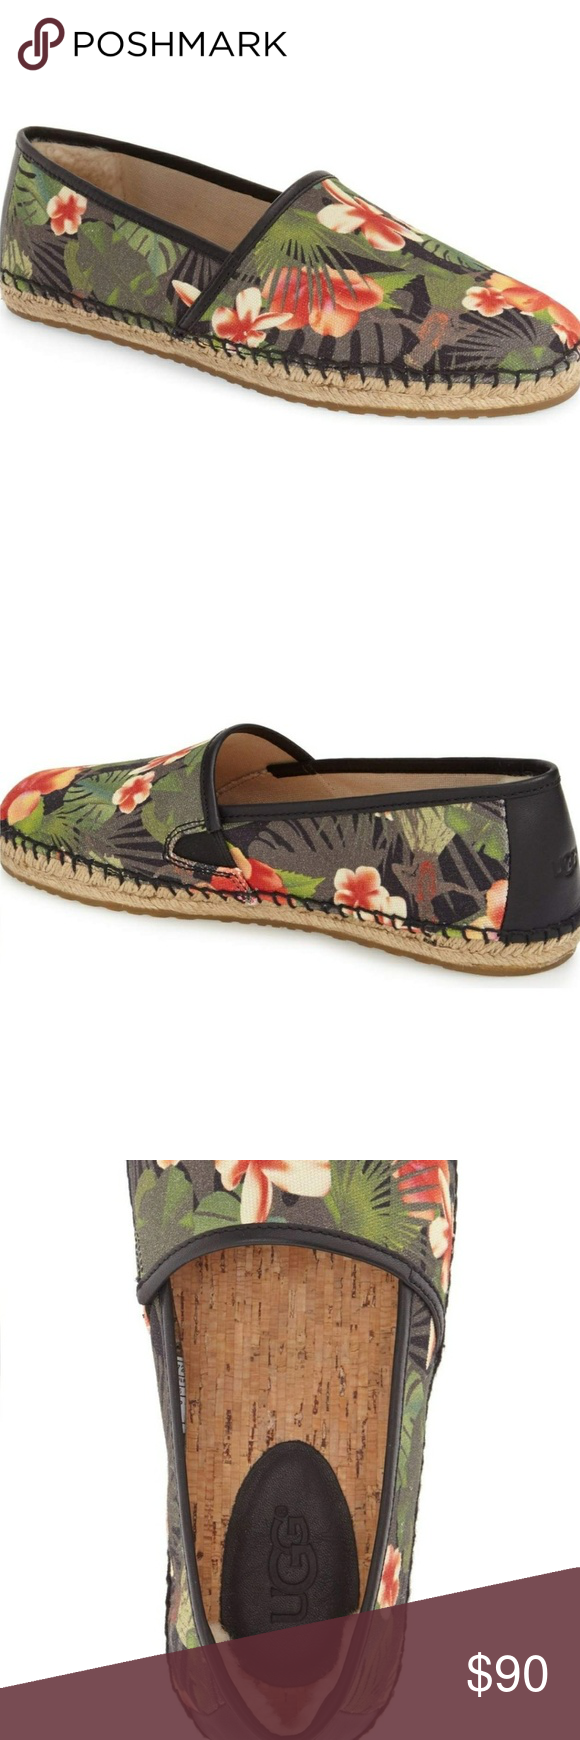 5bf099acdc8 Ugg Australia Men's Kas Hawaiian Print Slip On Ugg Australia - Men's ...